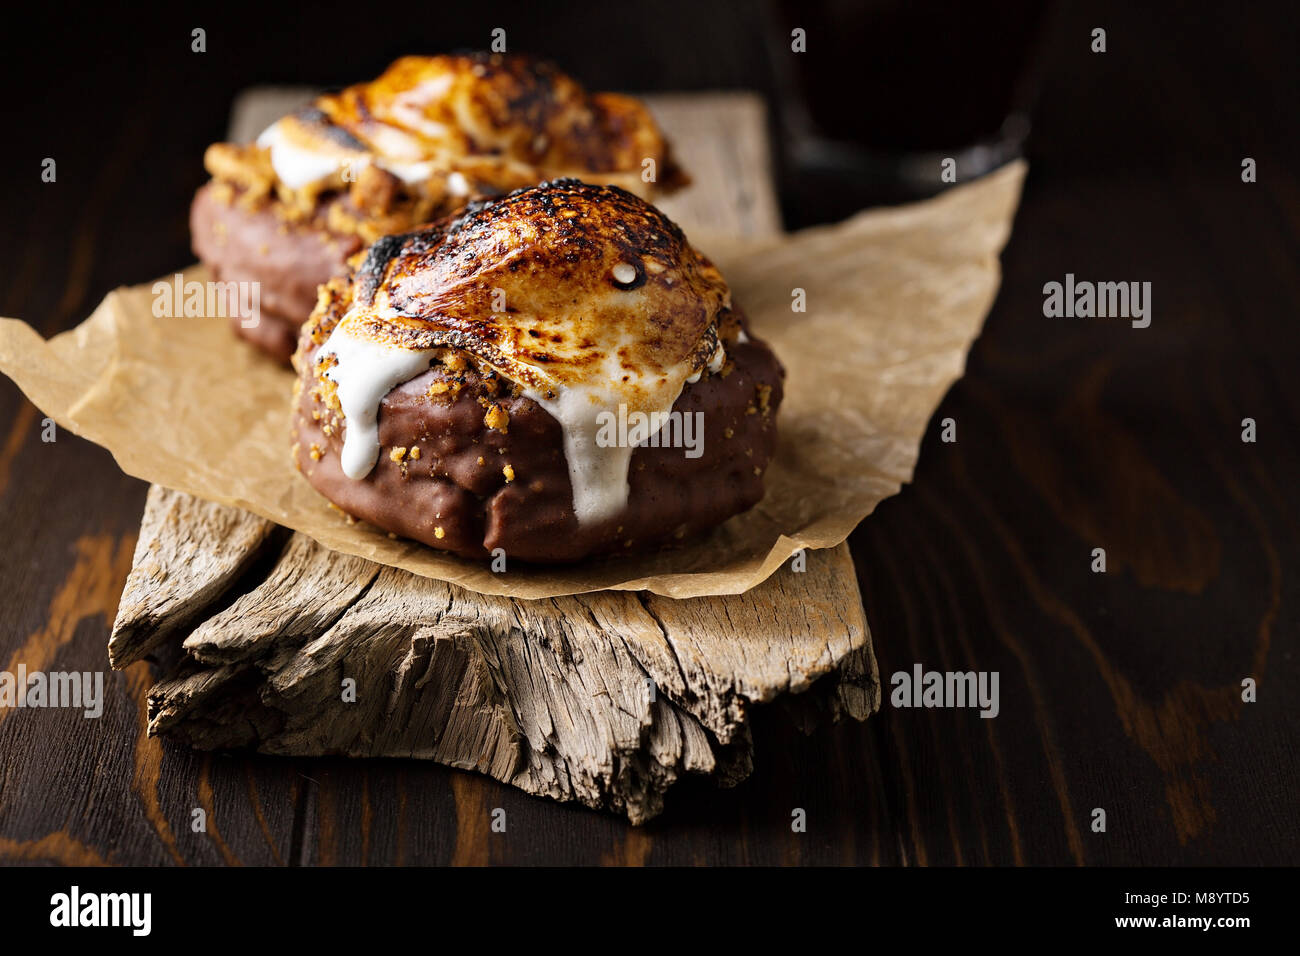 Smores donuts on dark background - Stock Image